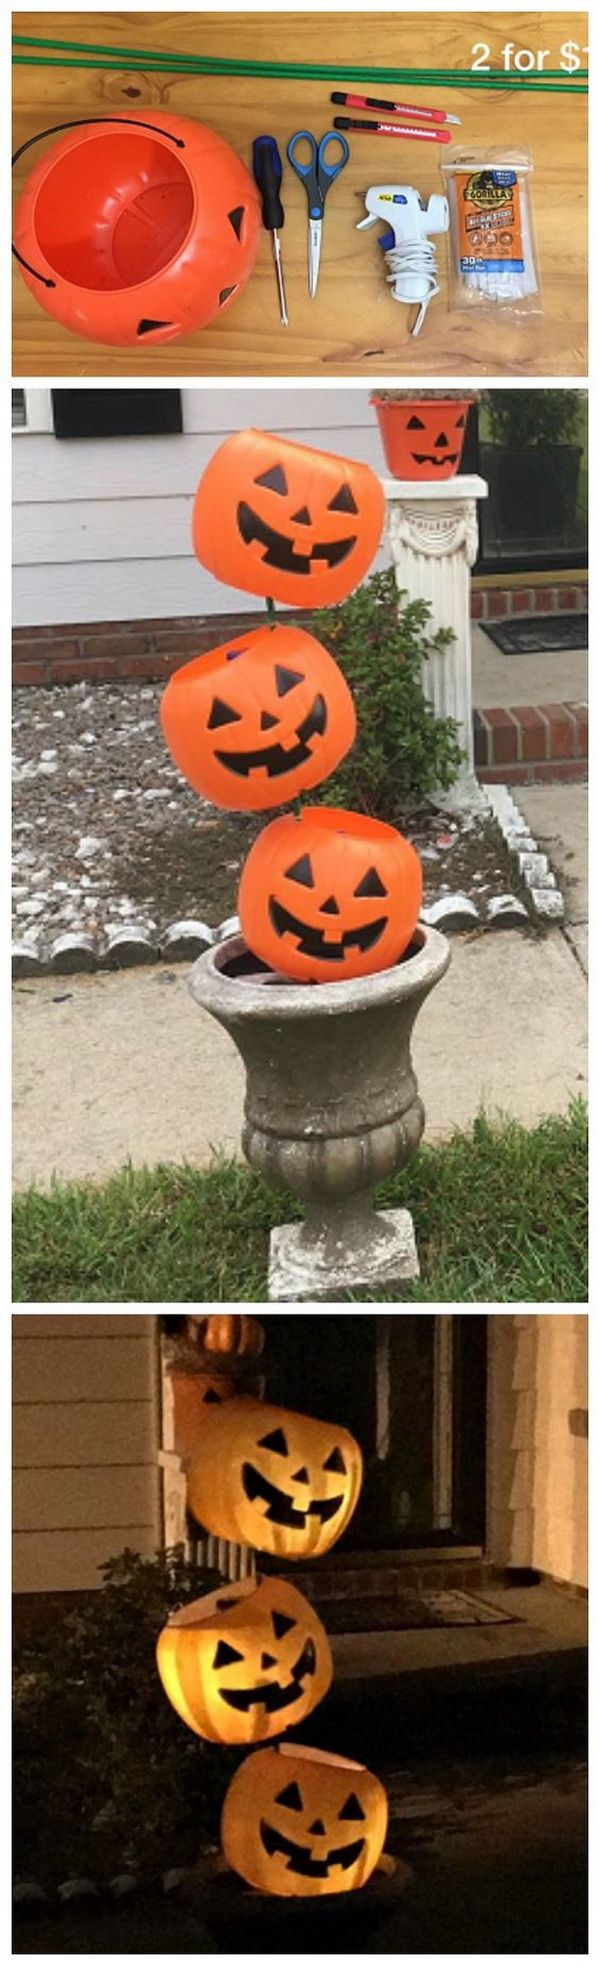 30+ Homemade Halloween Decoration Ideas Plastic pumpkins, Diy - Halloween Yard Decorations